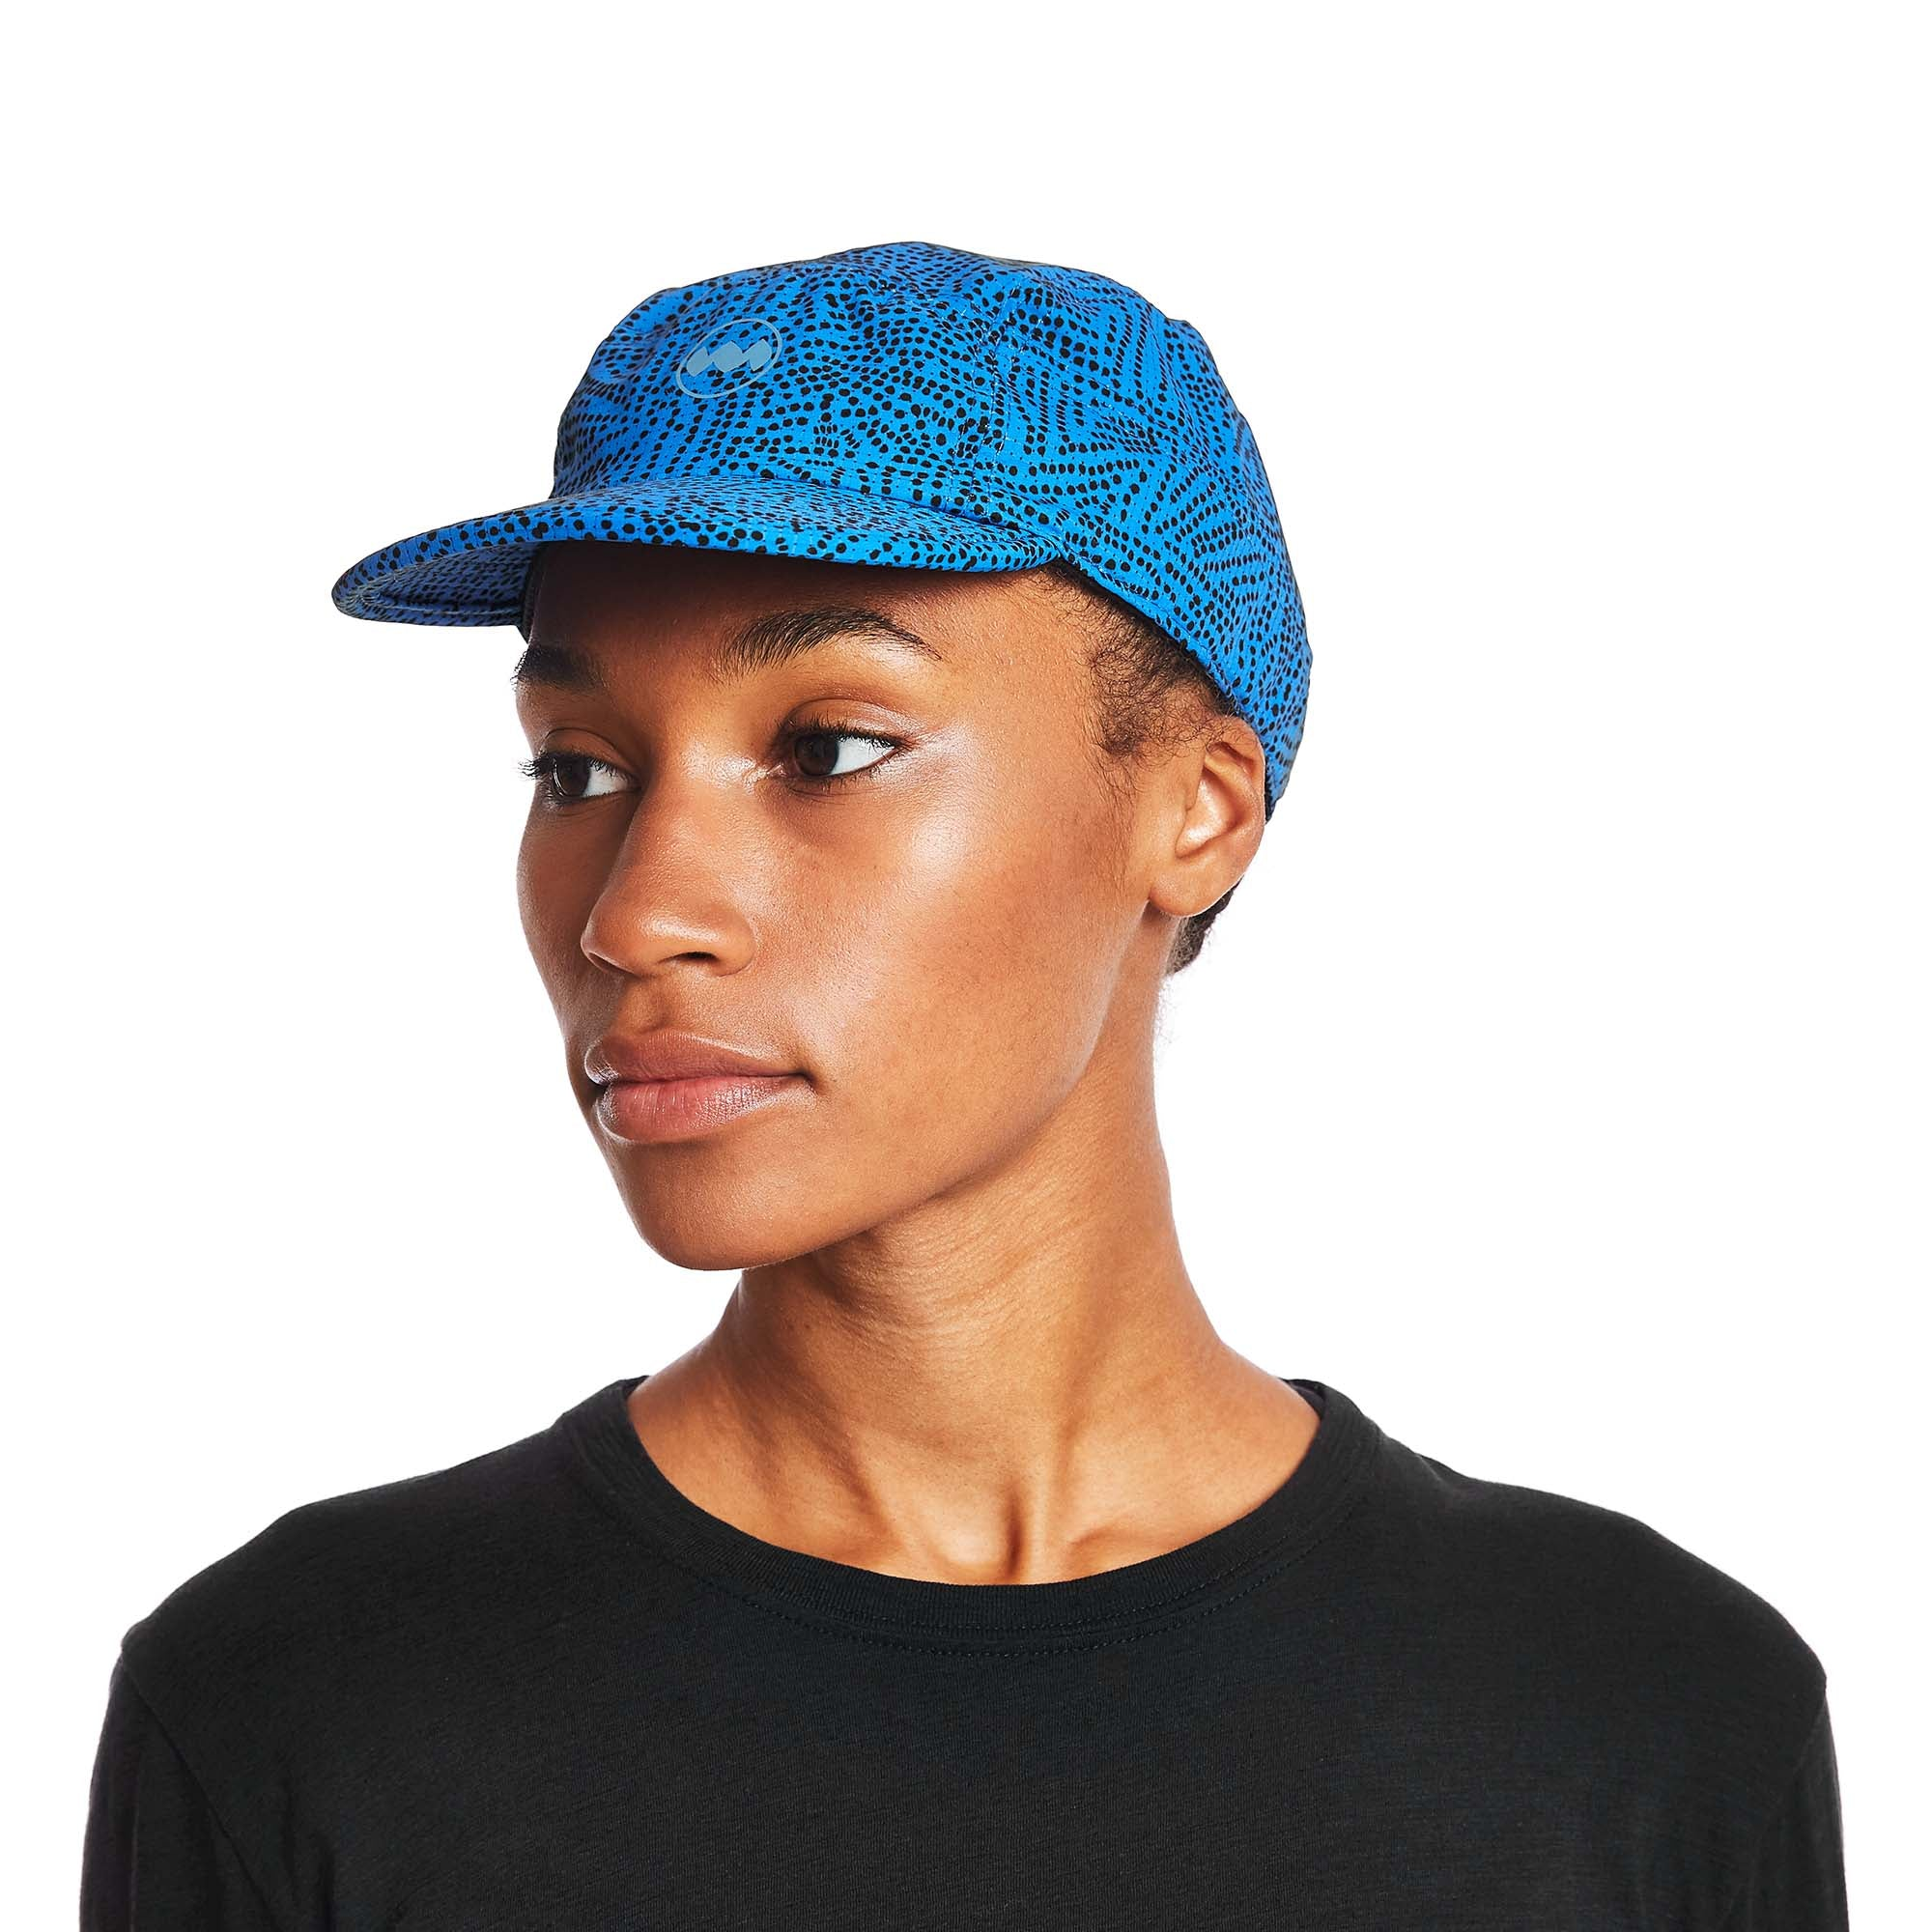 [Re]Run Cap in Royal Tok Dot